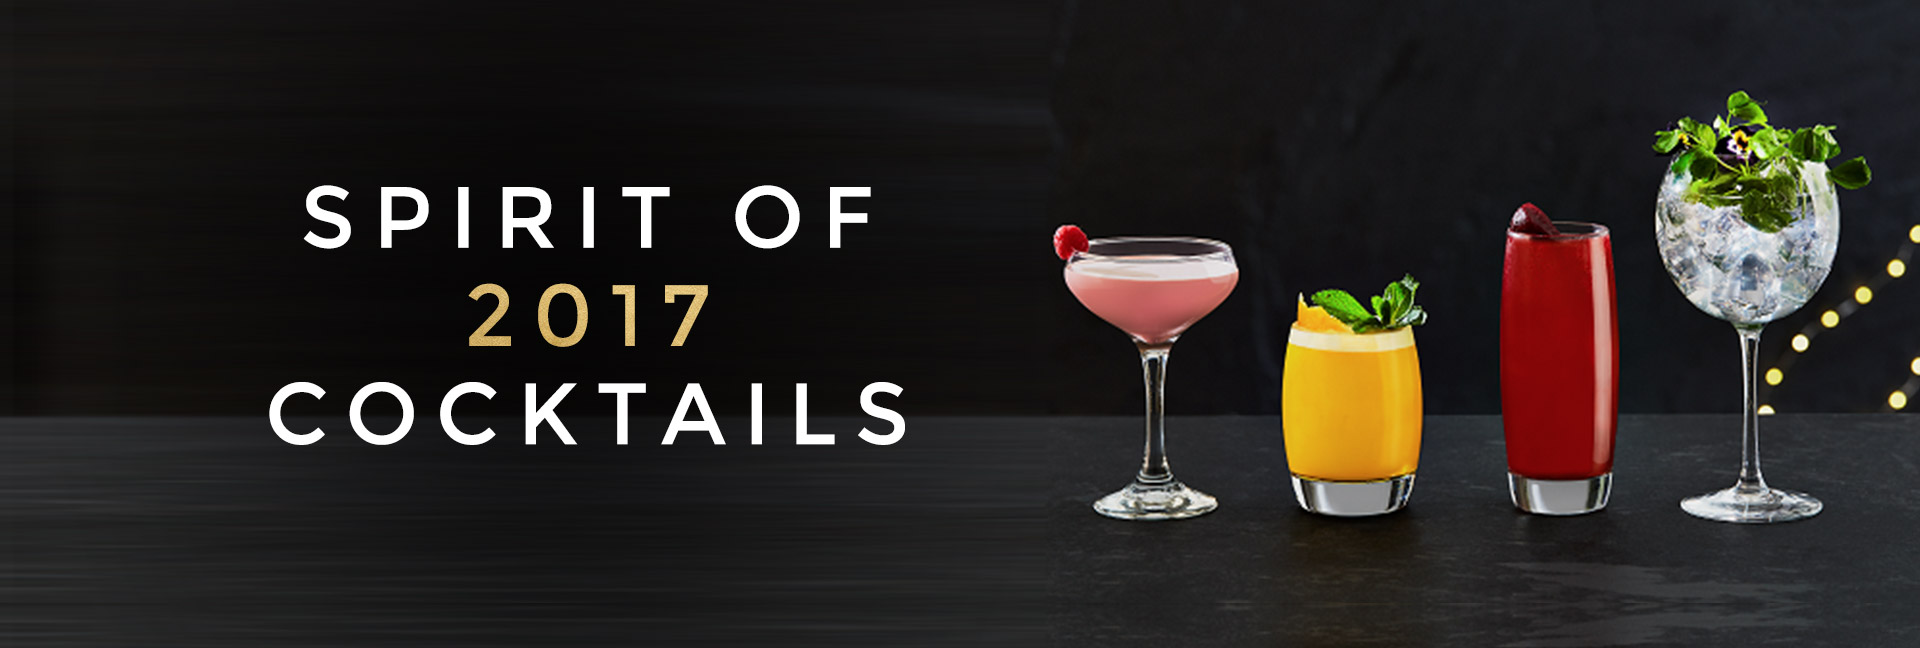 Spirit of 2017 cocktails at All Bar One The O2